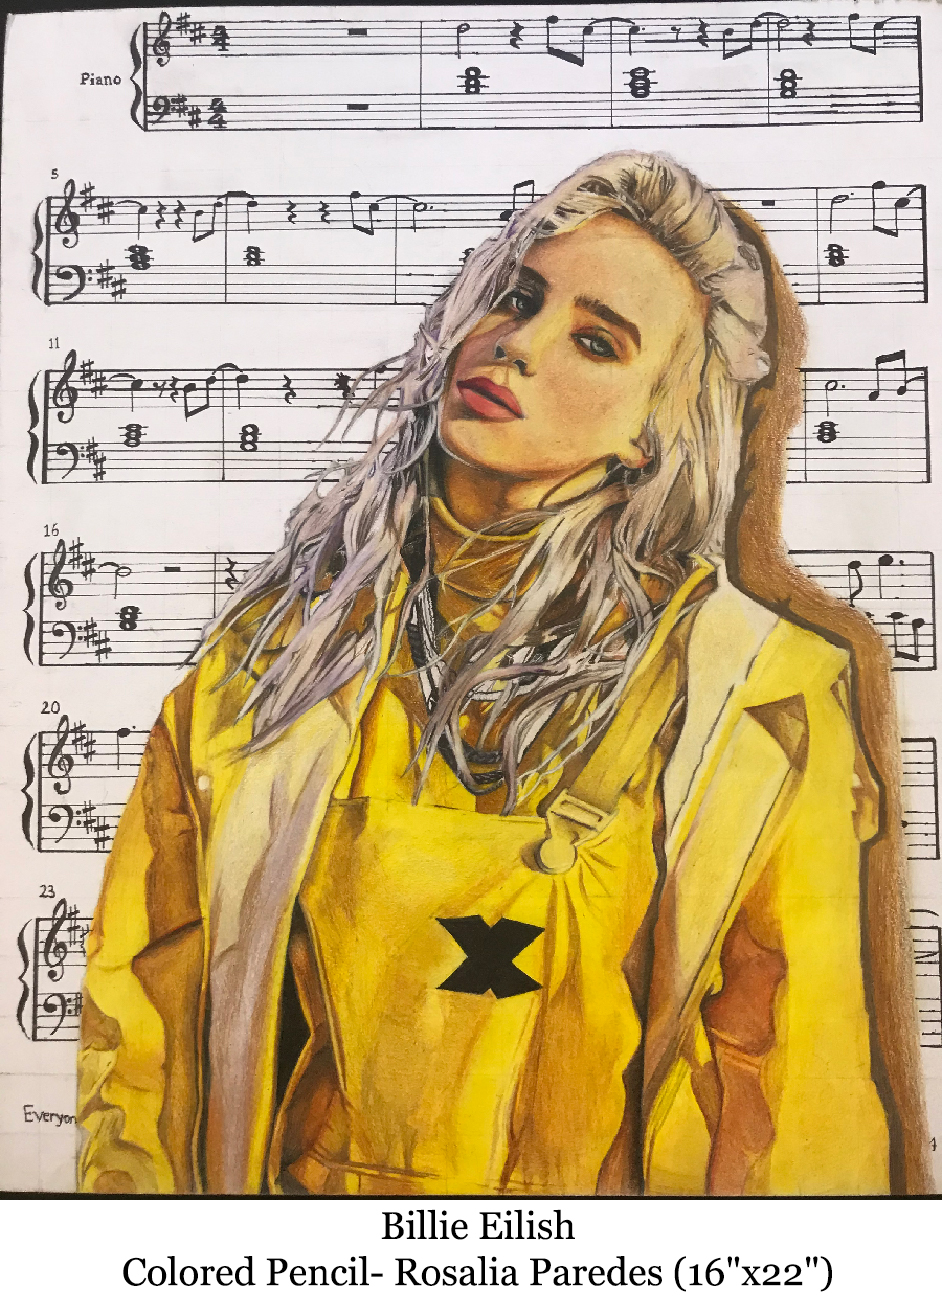 1588002956-billie_eilish-colored_pencil-rosalia_paredes__16_x22__